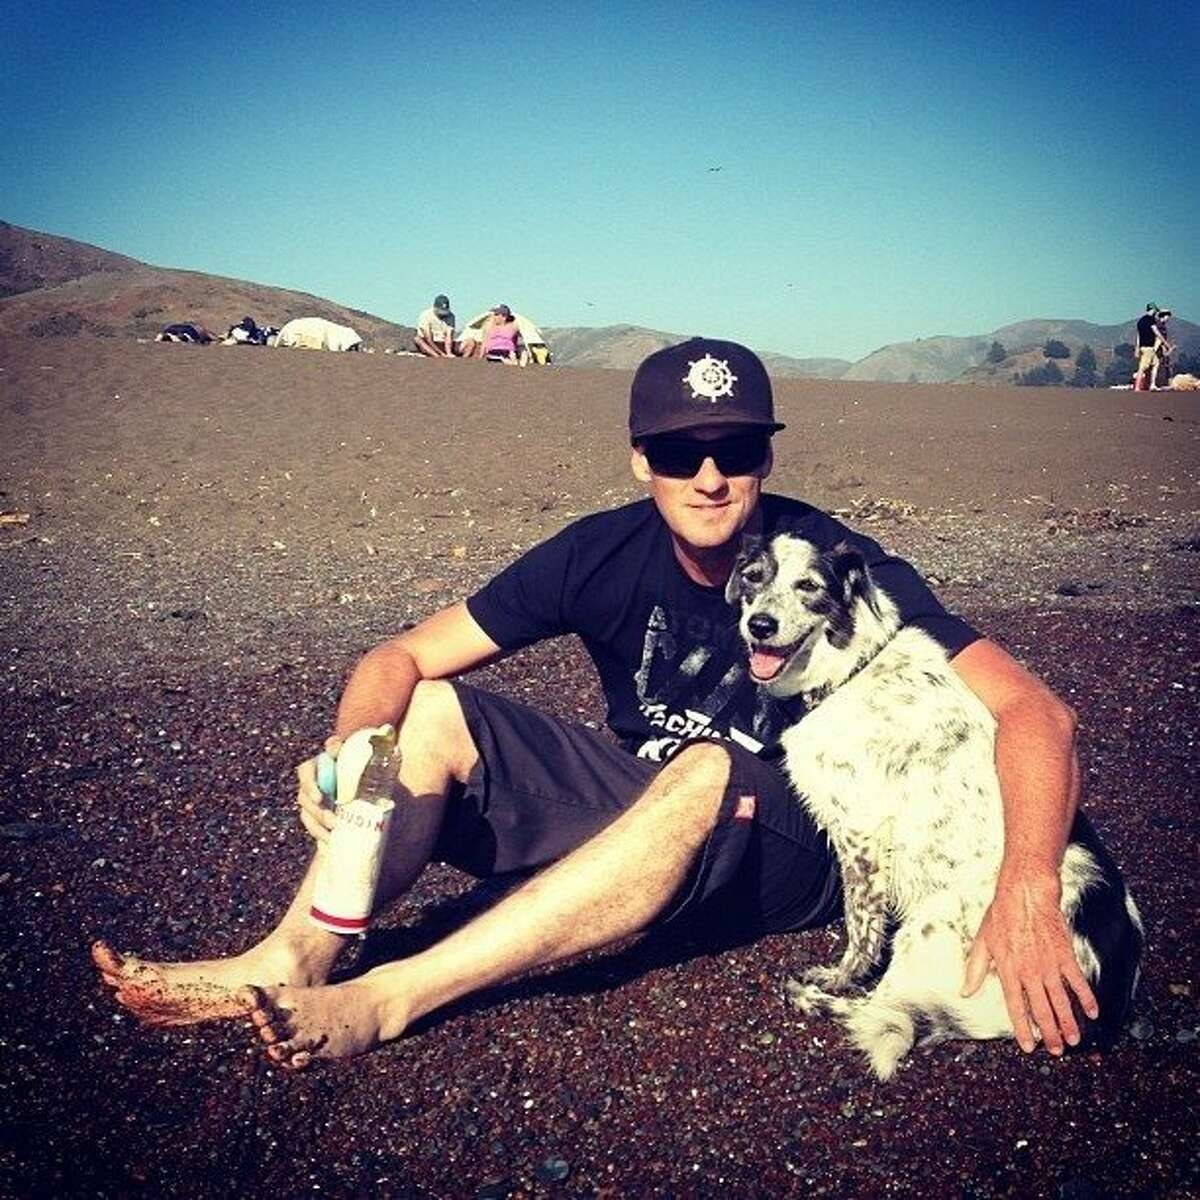 A search resumed Thursday for surfer Dan Dafoe, a San Mateo resident who went missing Wednesday after getting knocked out by a wave while surfing off Rodeo Beach in Marin County.